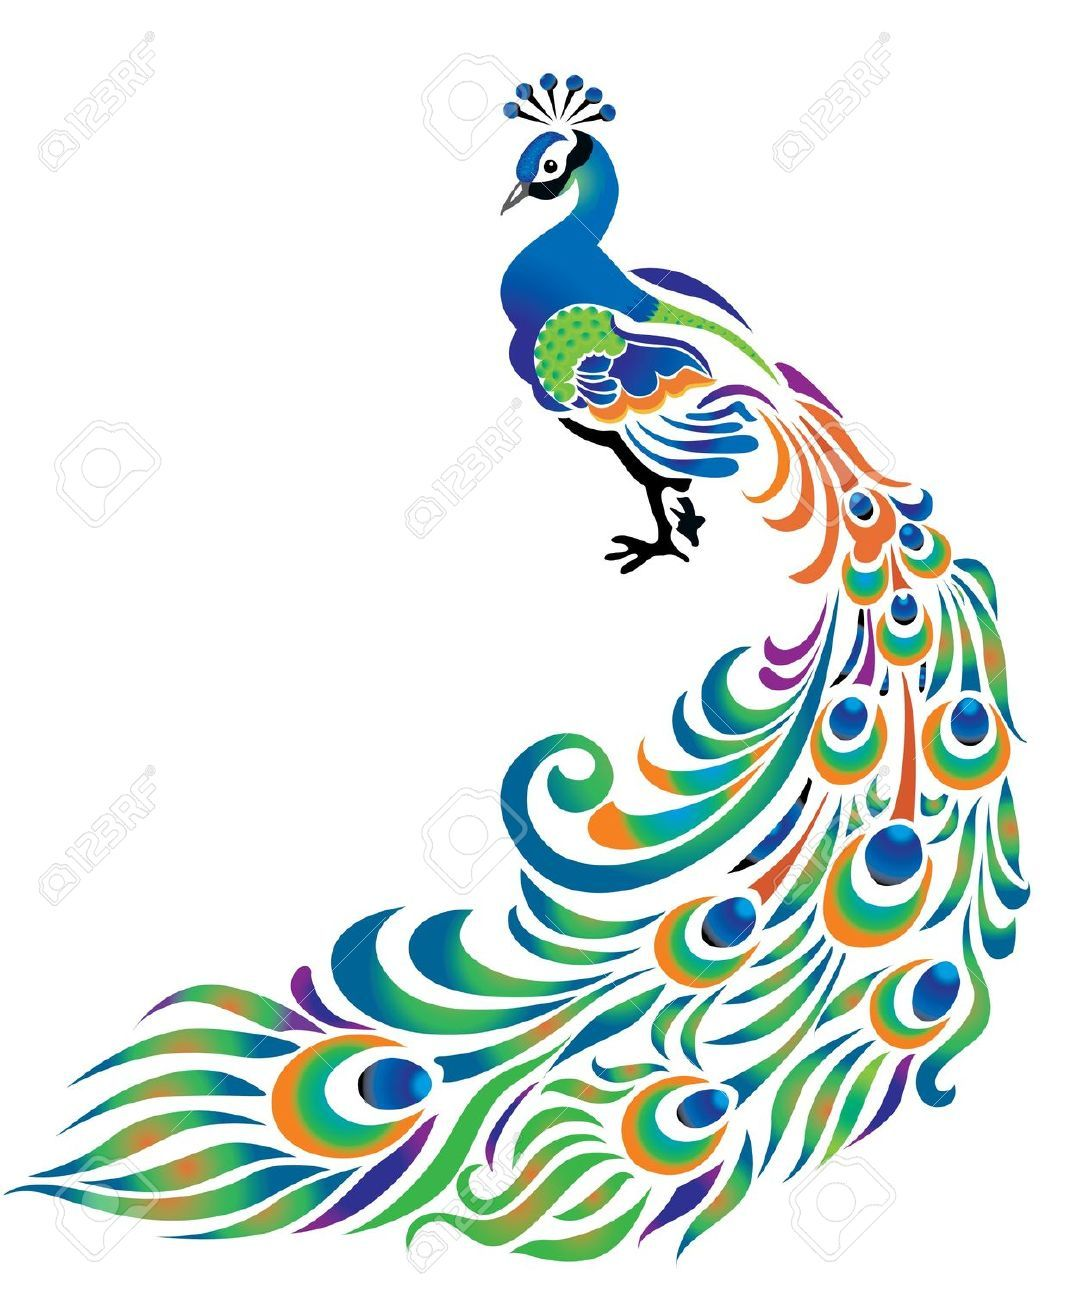 Free costume pinterest peacocks. 2 clipart peacock